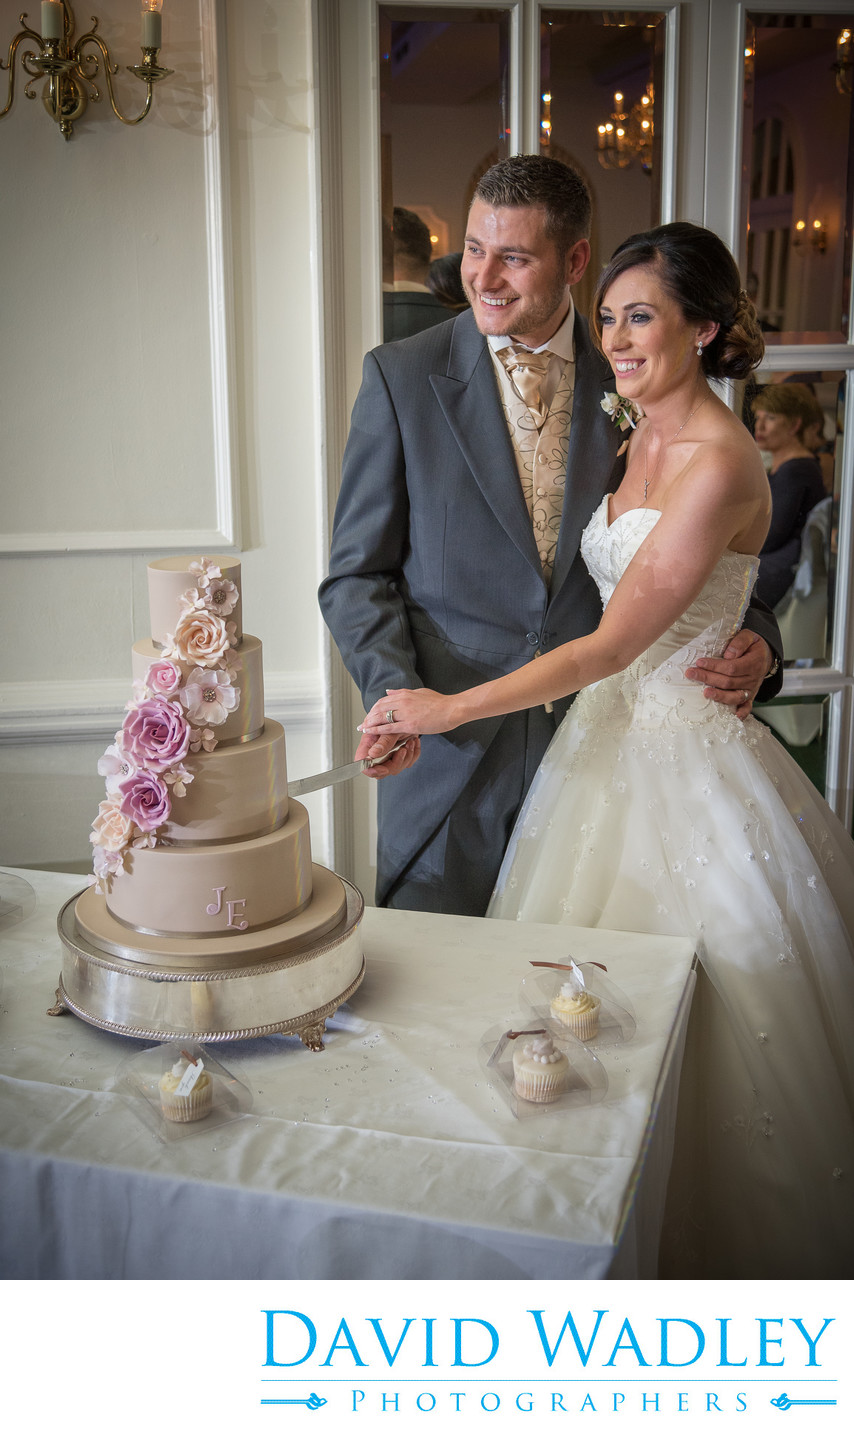 Cutting the Wedding cake at Moor Hall Hotel.